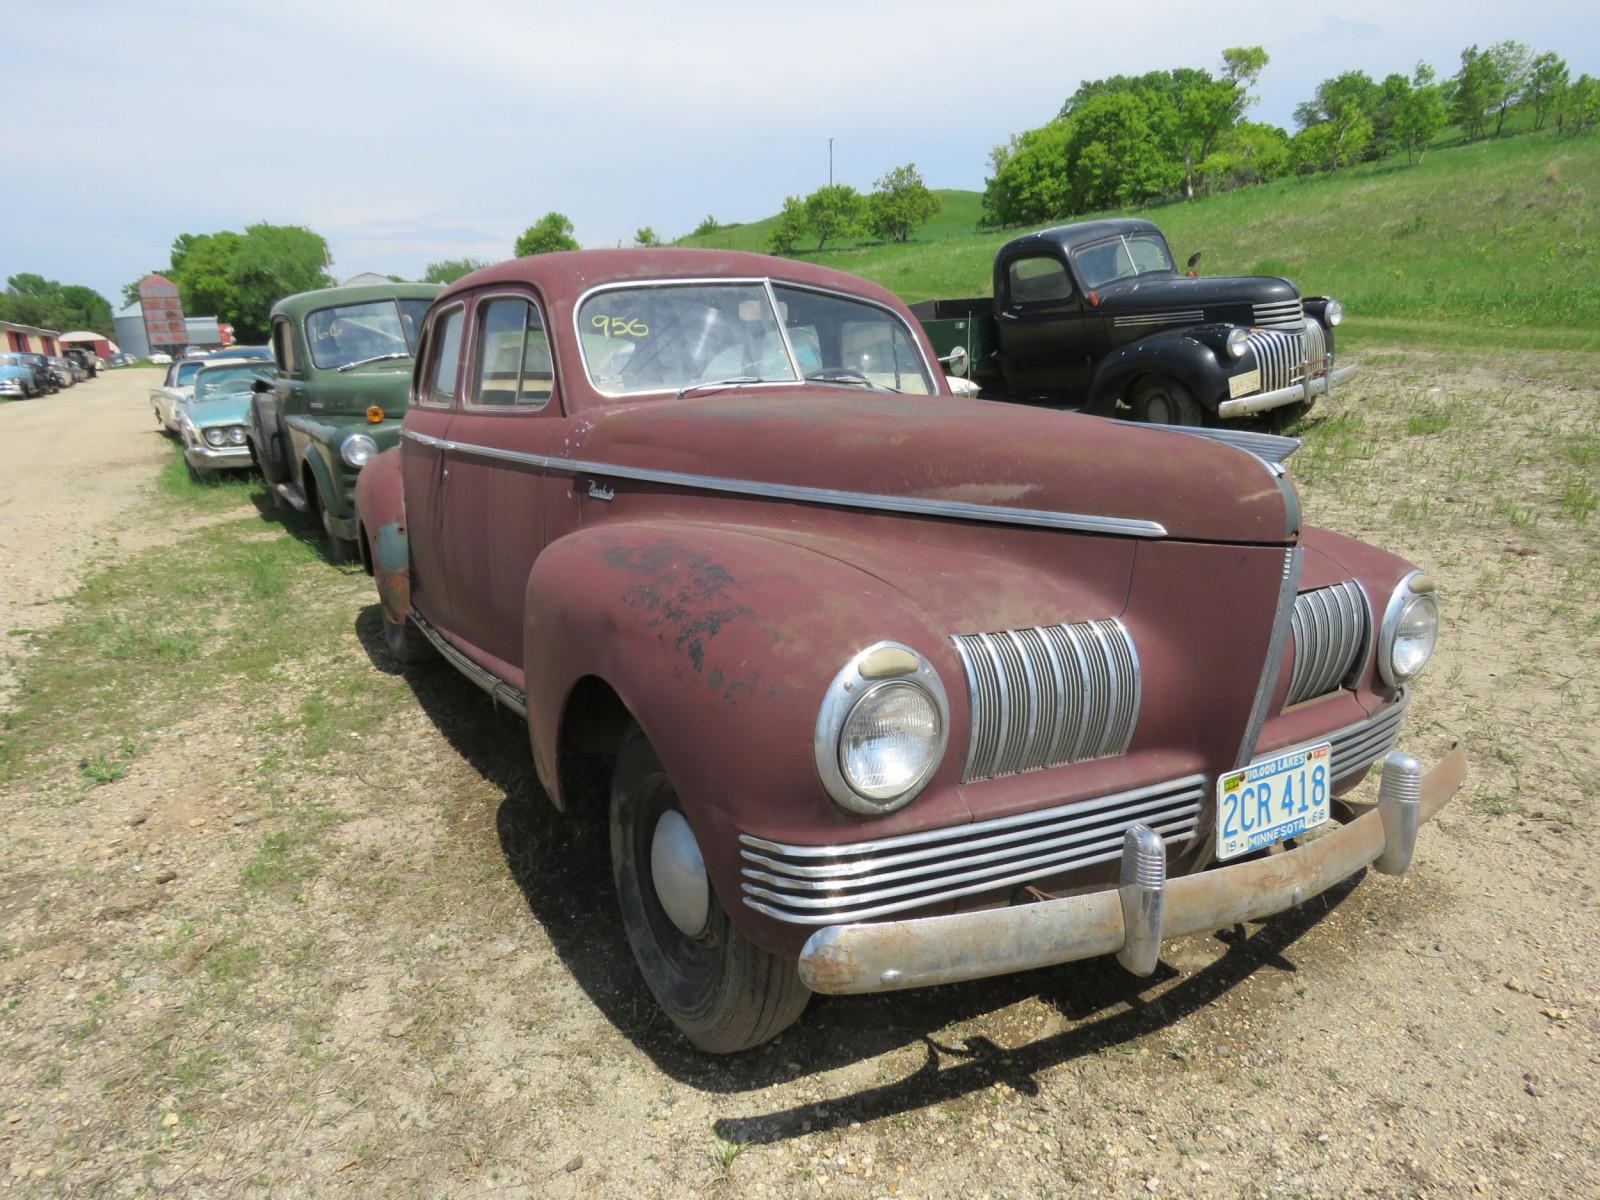 1941 Nash 6 4dr Suicide Sedan for Rod or Restore - Image 1